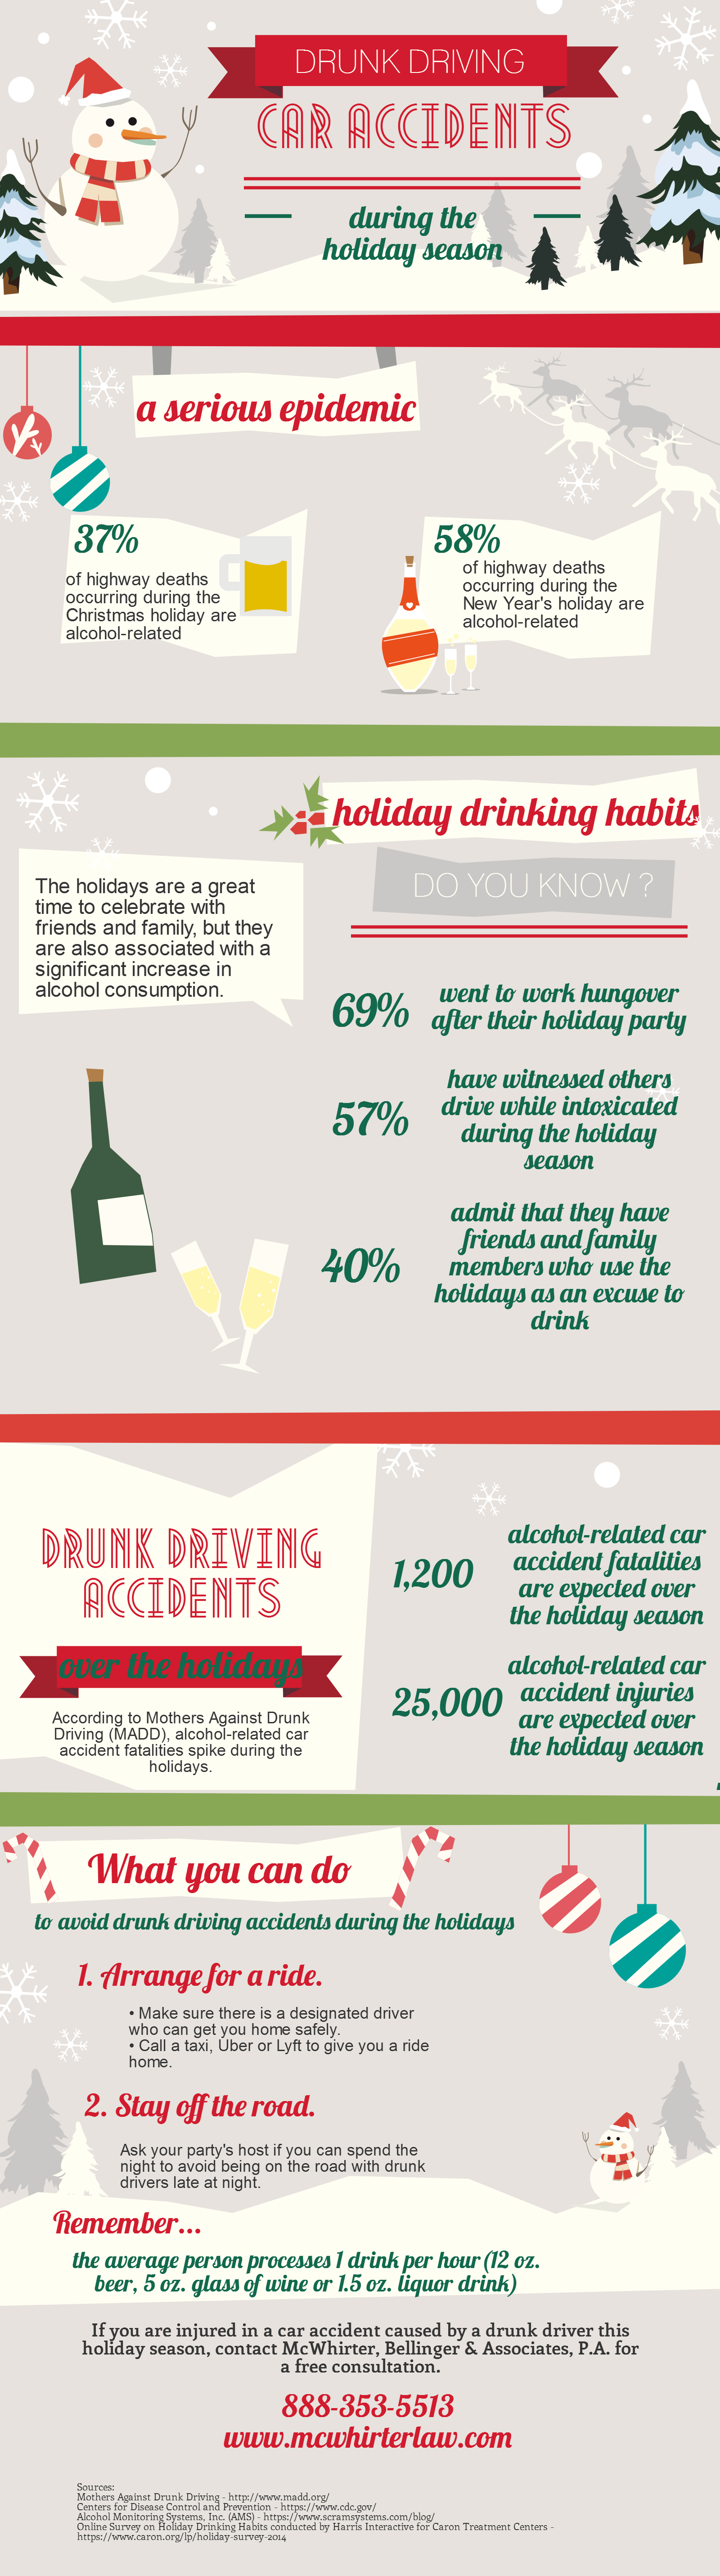 Infographic - Drunk Driving Car Accidents during the Holiday Season